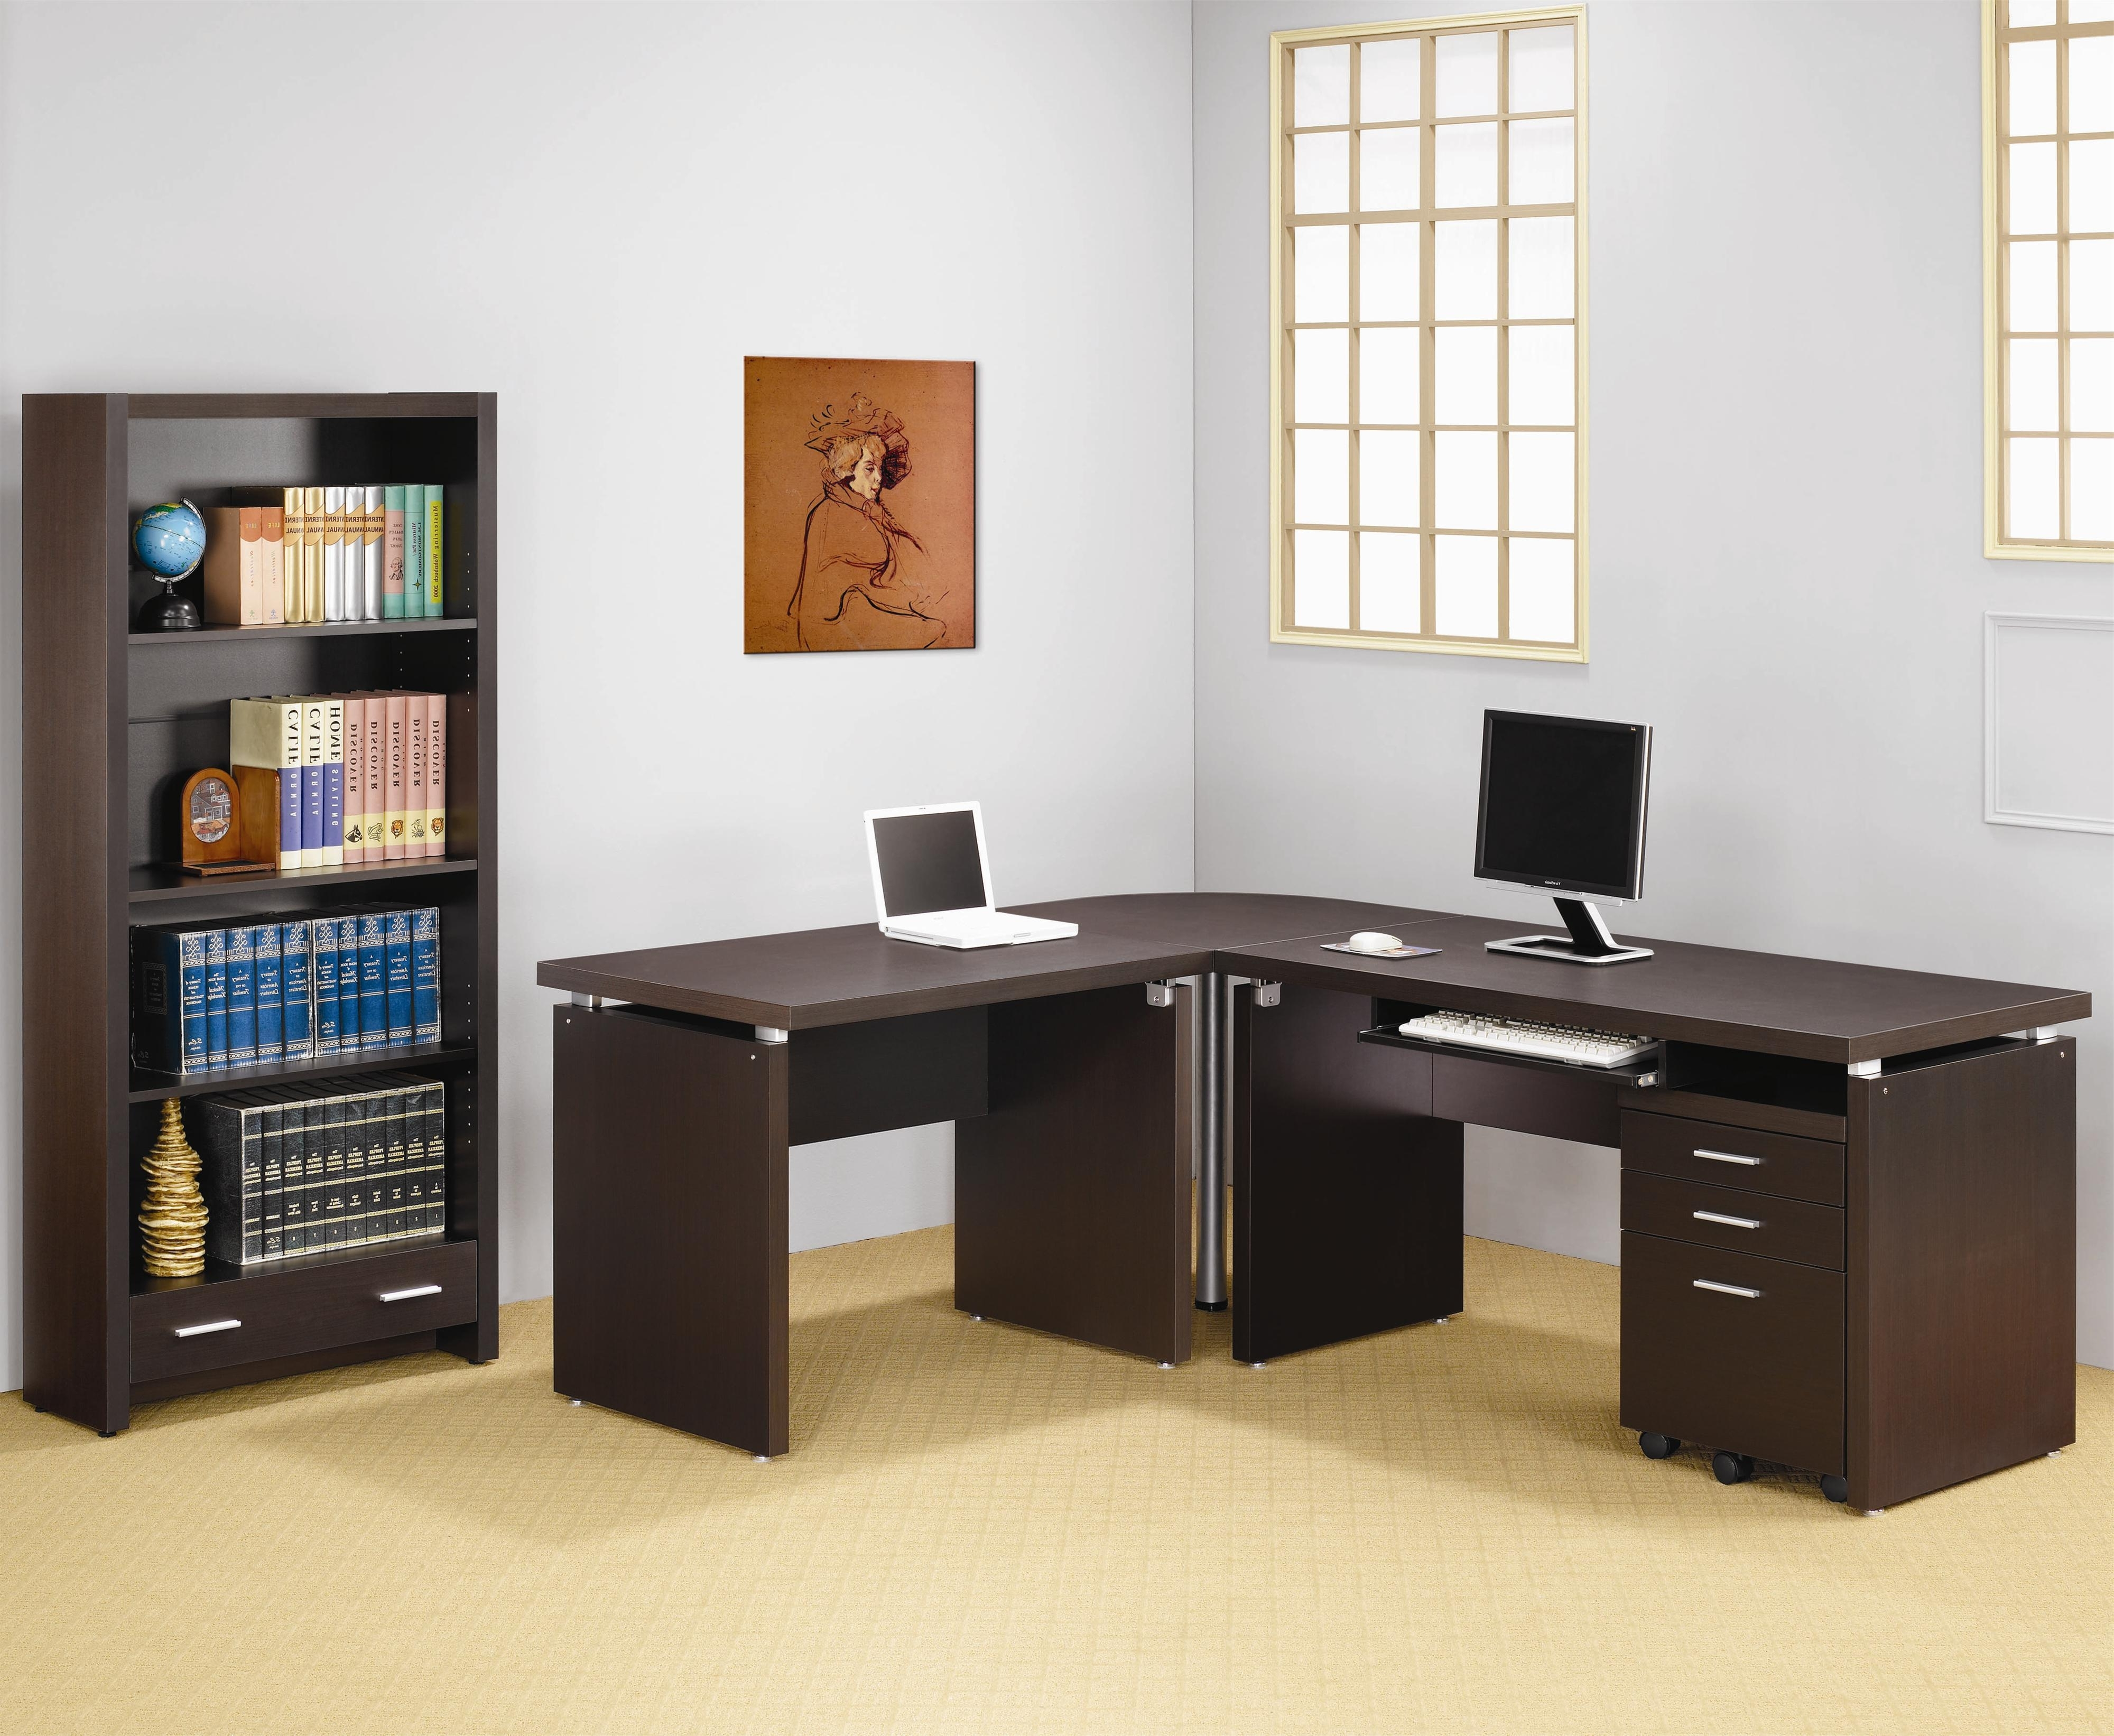 2018 Computer Desks For Bedrooms Inside Numerable Variety Of L Shaped Computer Desk – Bellissimainteriors (View 7 of 20)